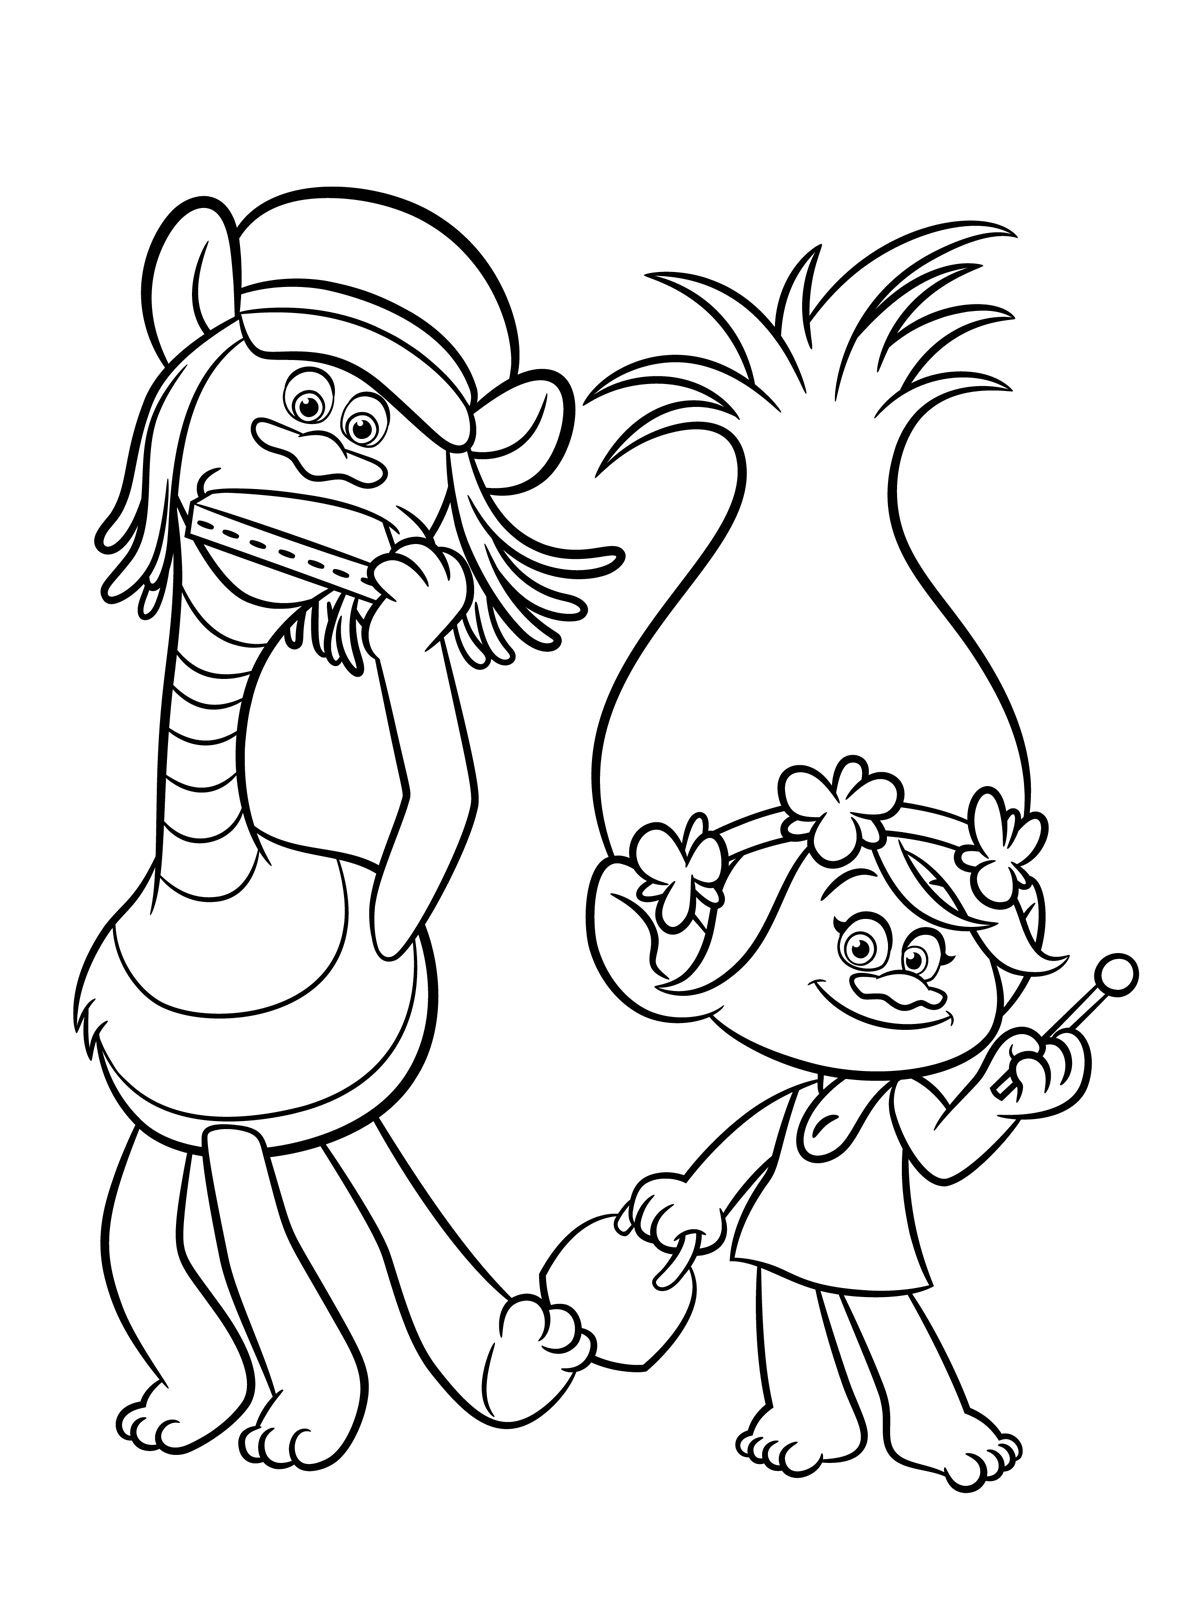 photos to coloring pages - photo#2